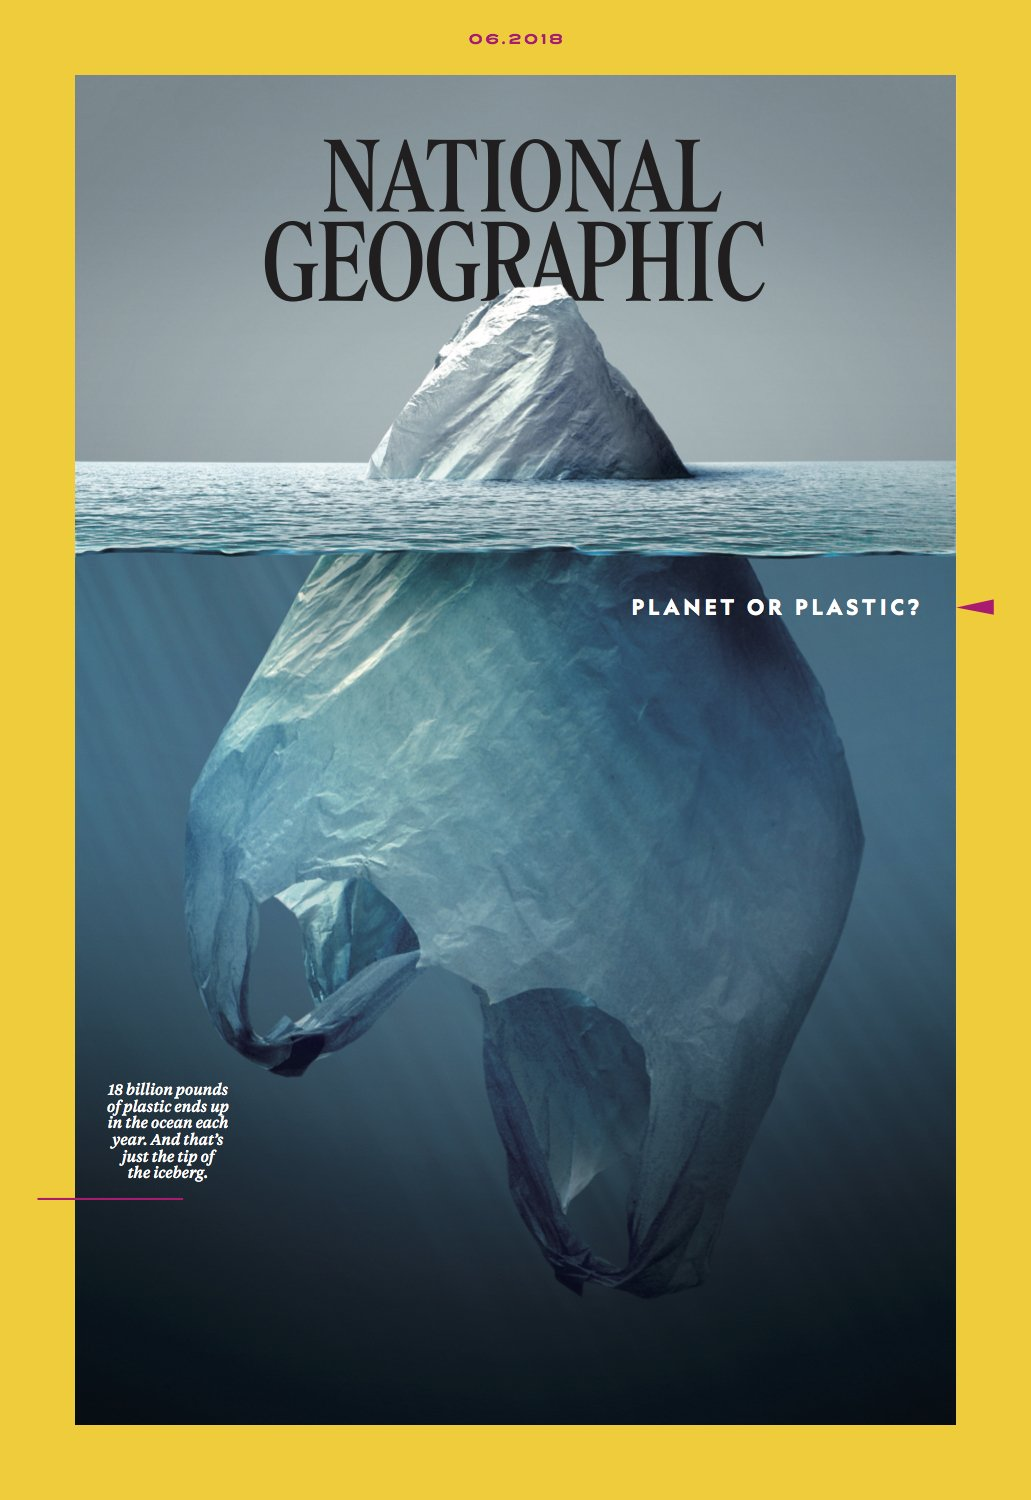 Our latest @NatGeo cover is one for the ages  #PlanetorPlastic https://t.co/NssiHOtaYc